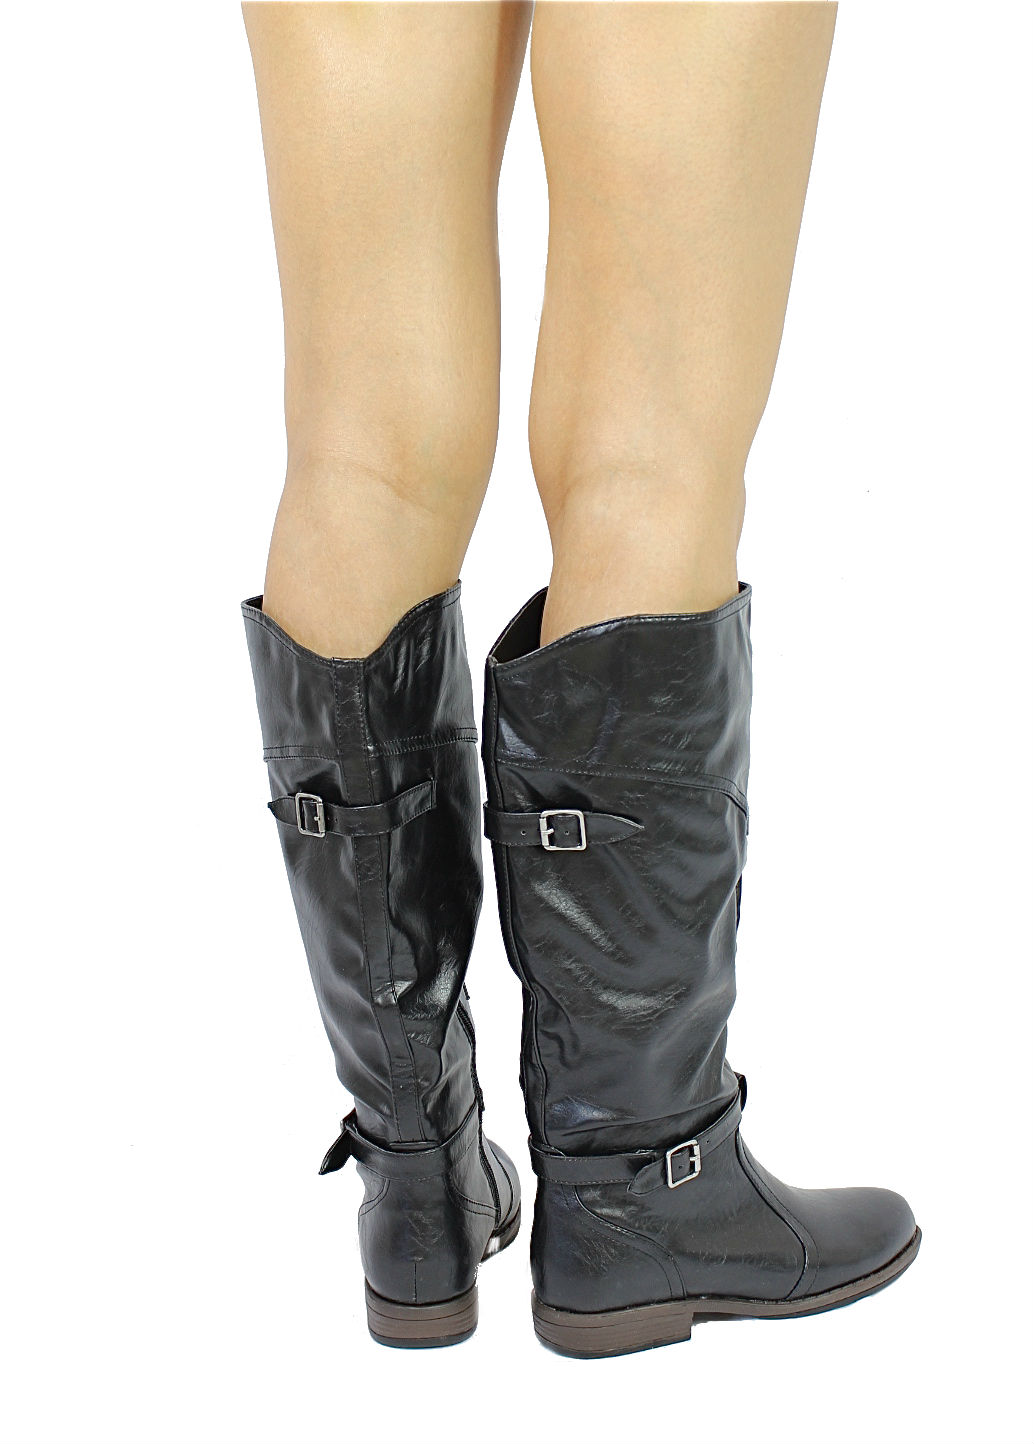 Bamboo Montage-78 Black Buckle Round Toe Knee Heigh Riding Boots-1655